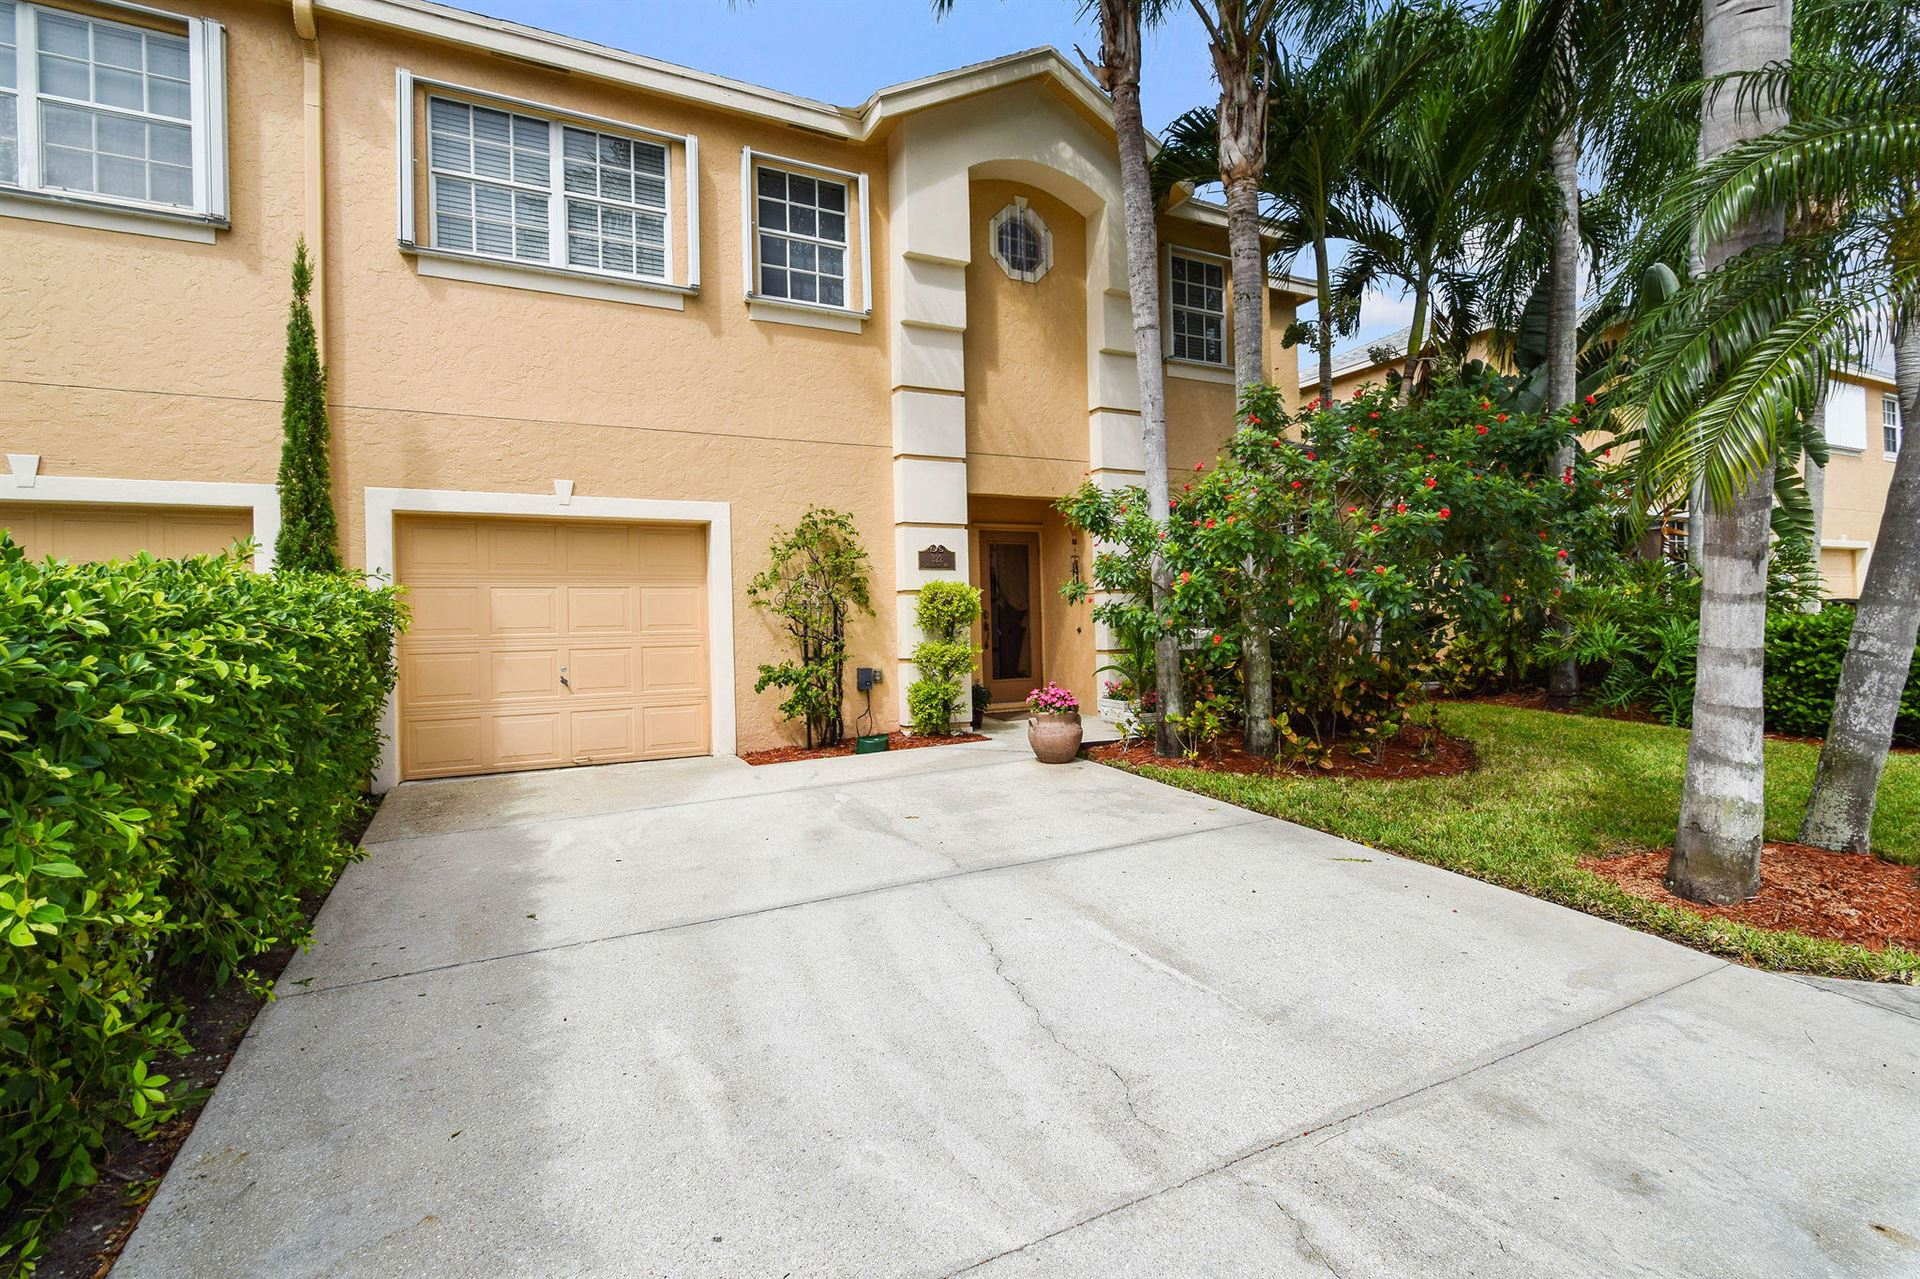 322 Laurel Oaks Way, Jupiter, FL 33458 - #: RX-10660812